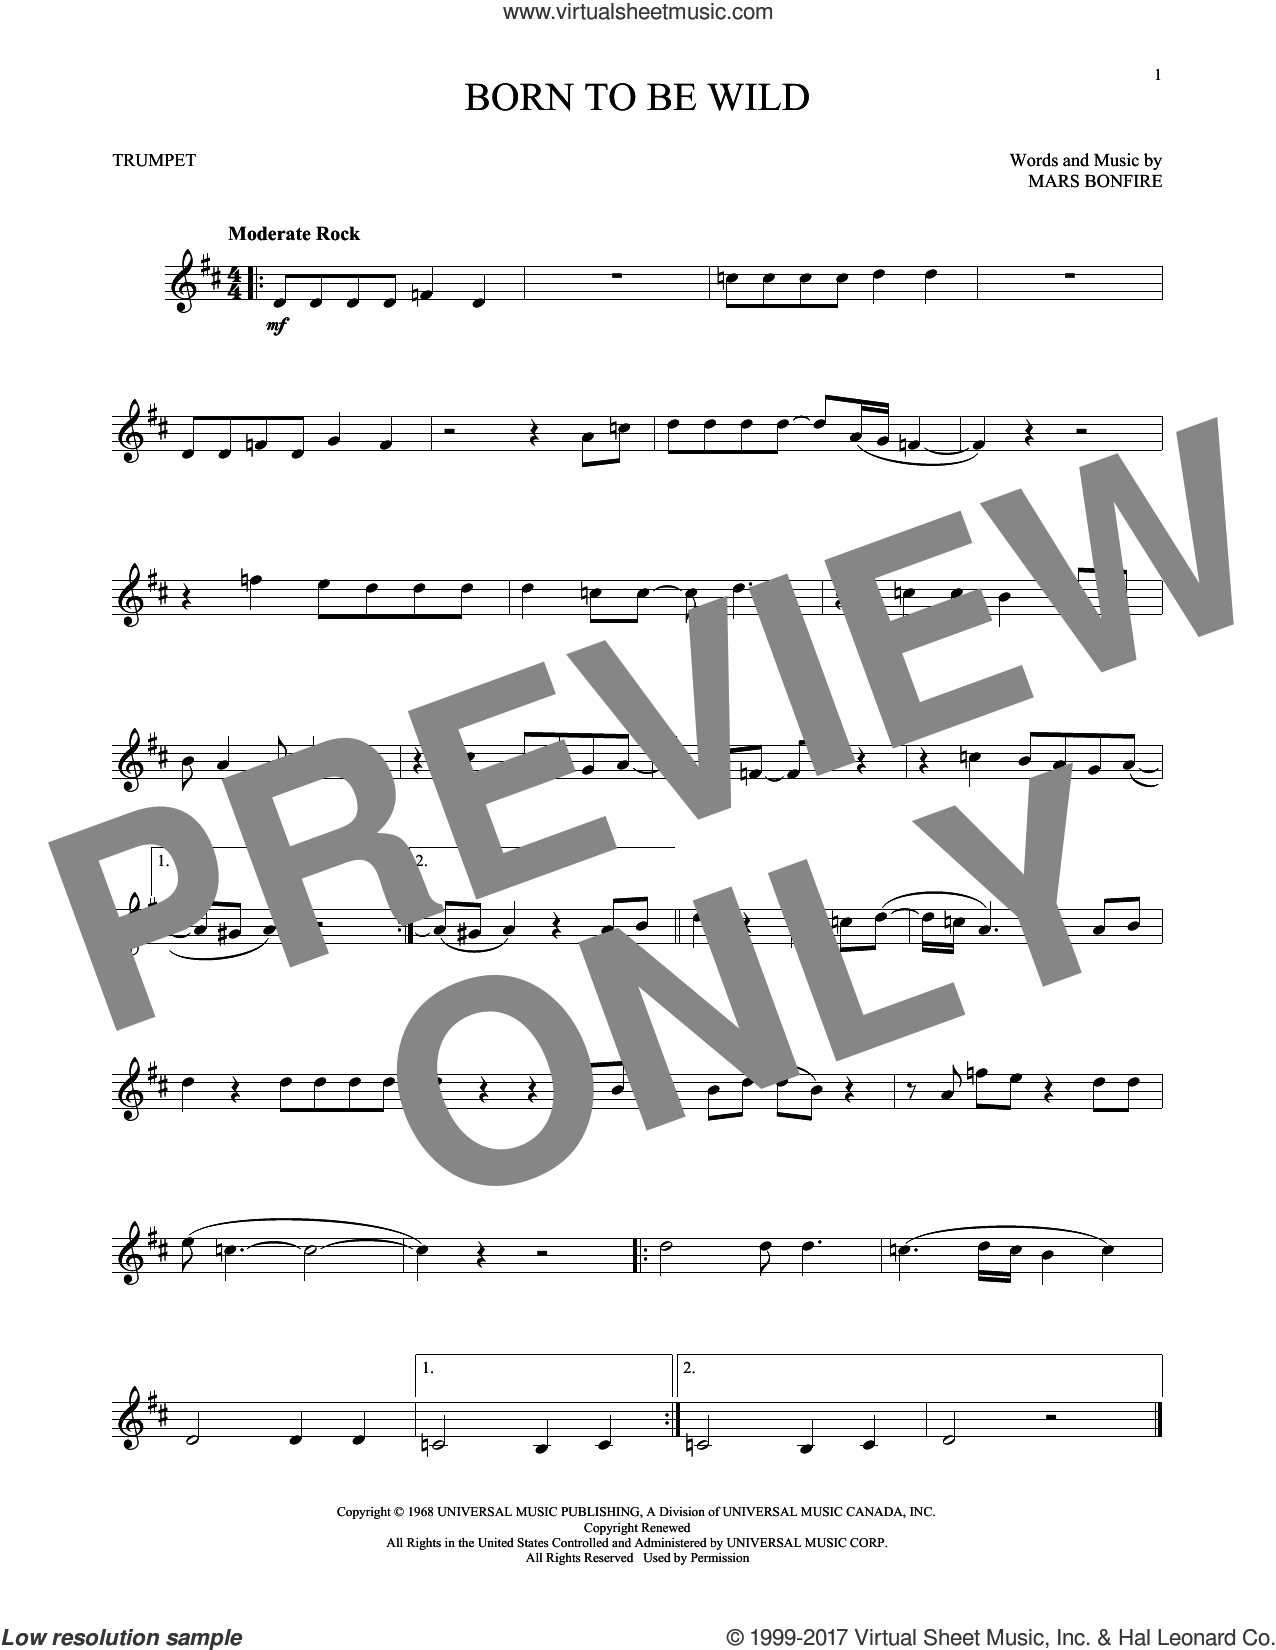 Born To Be Wild sheet music for trumpet solo by Steppenwolf and Mars Bonfire, intermediate skill level